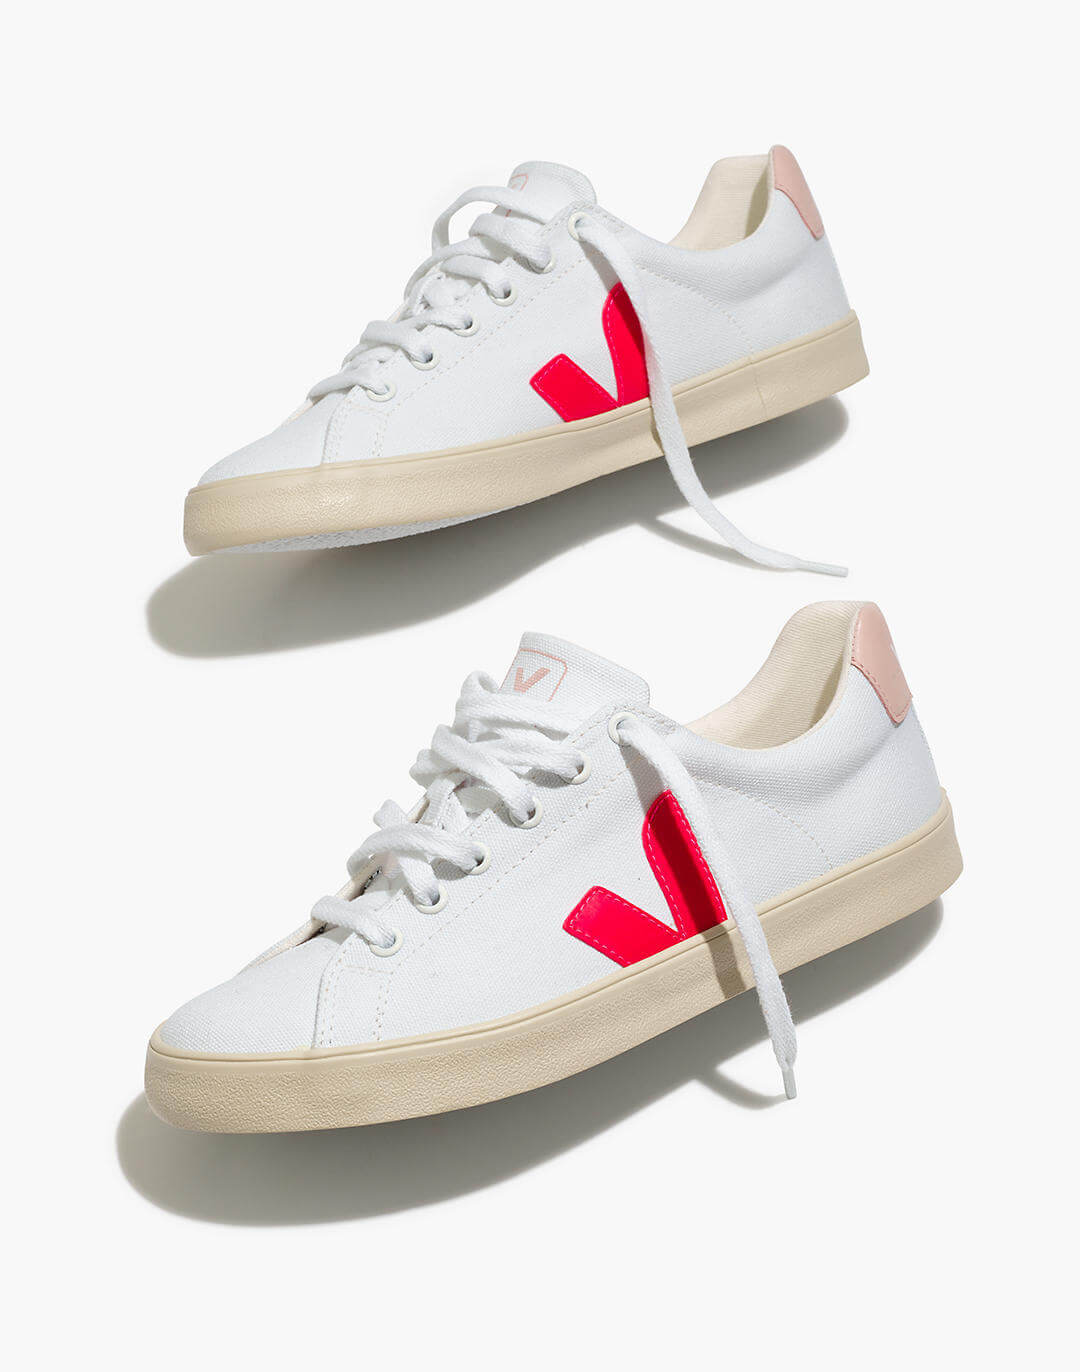 Veja canvas sneakers